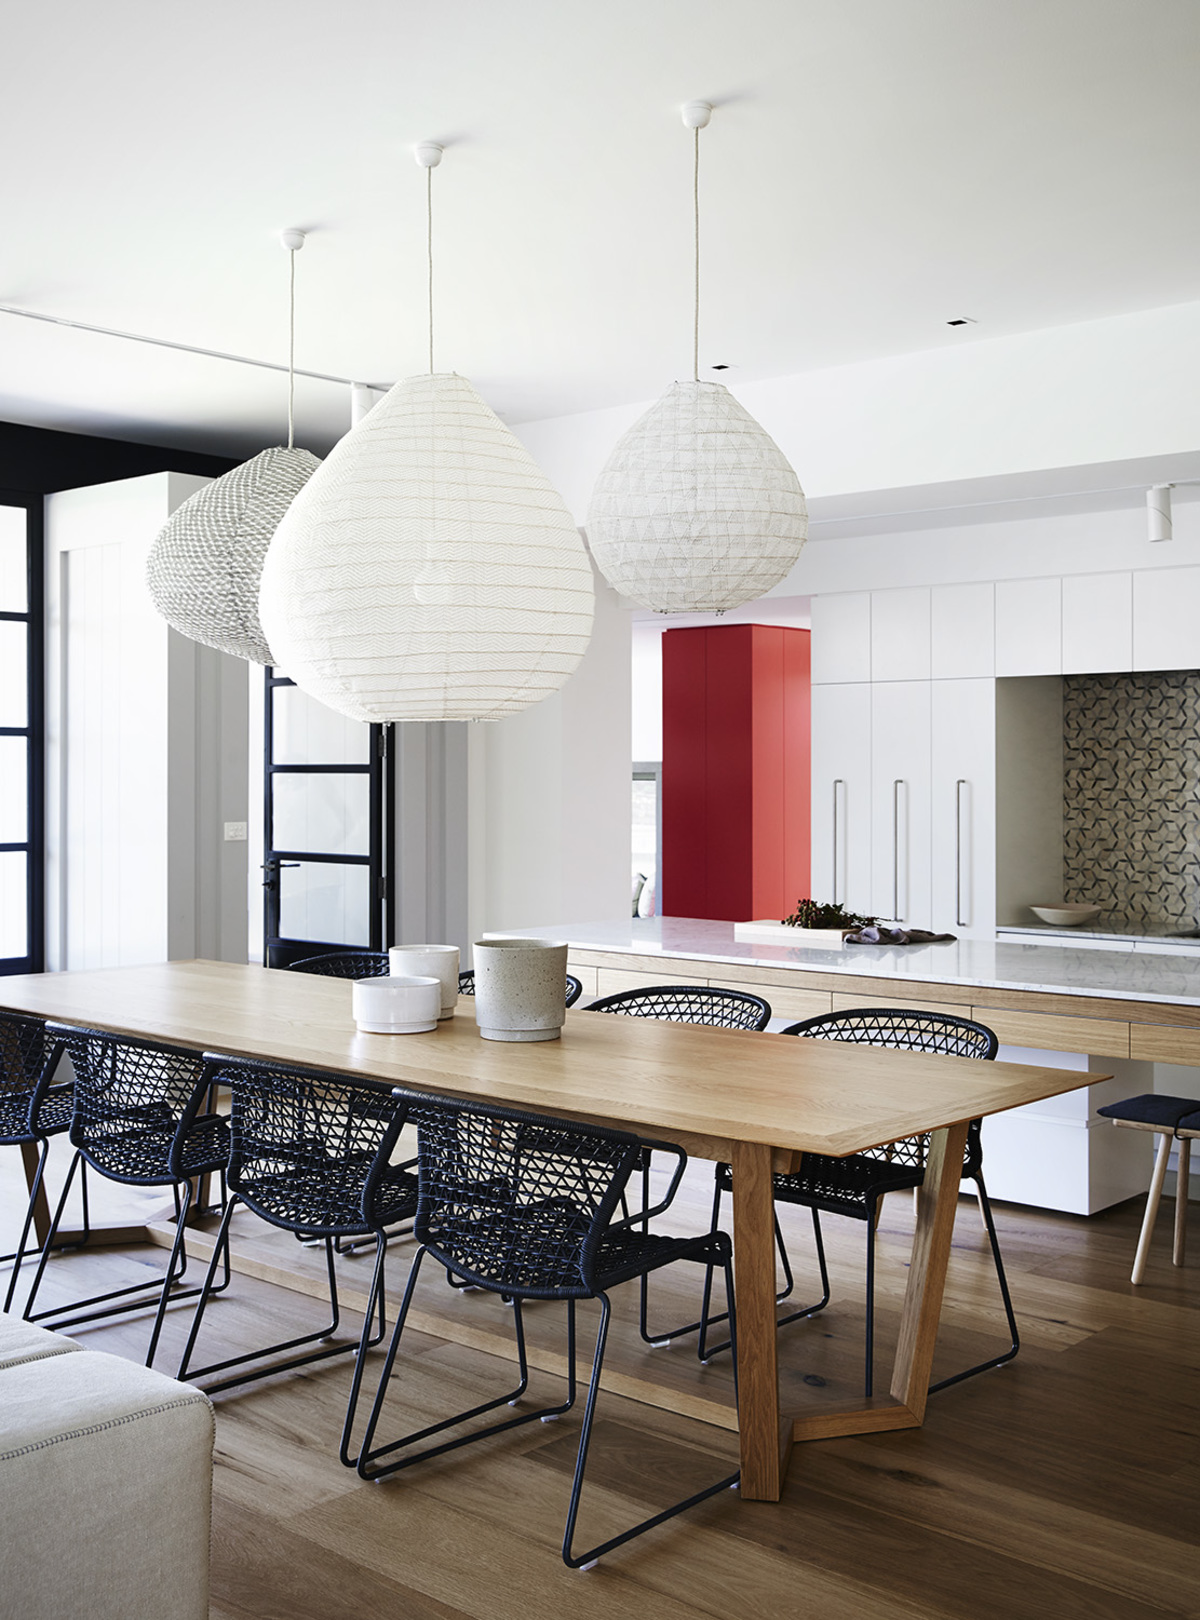 Normanby | Design: Whiting Architects | Images: Sharyn Cairns | Builtworks.com.au